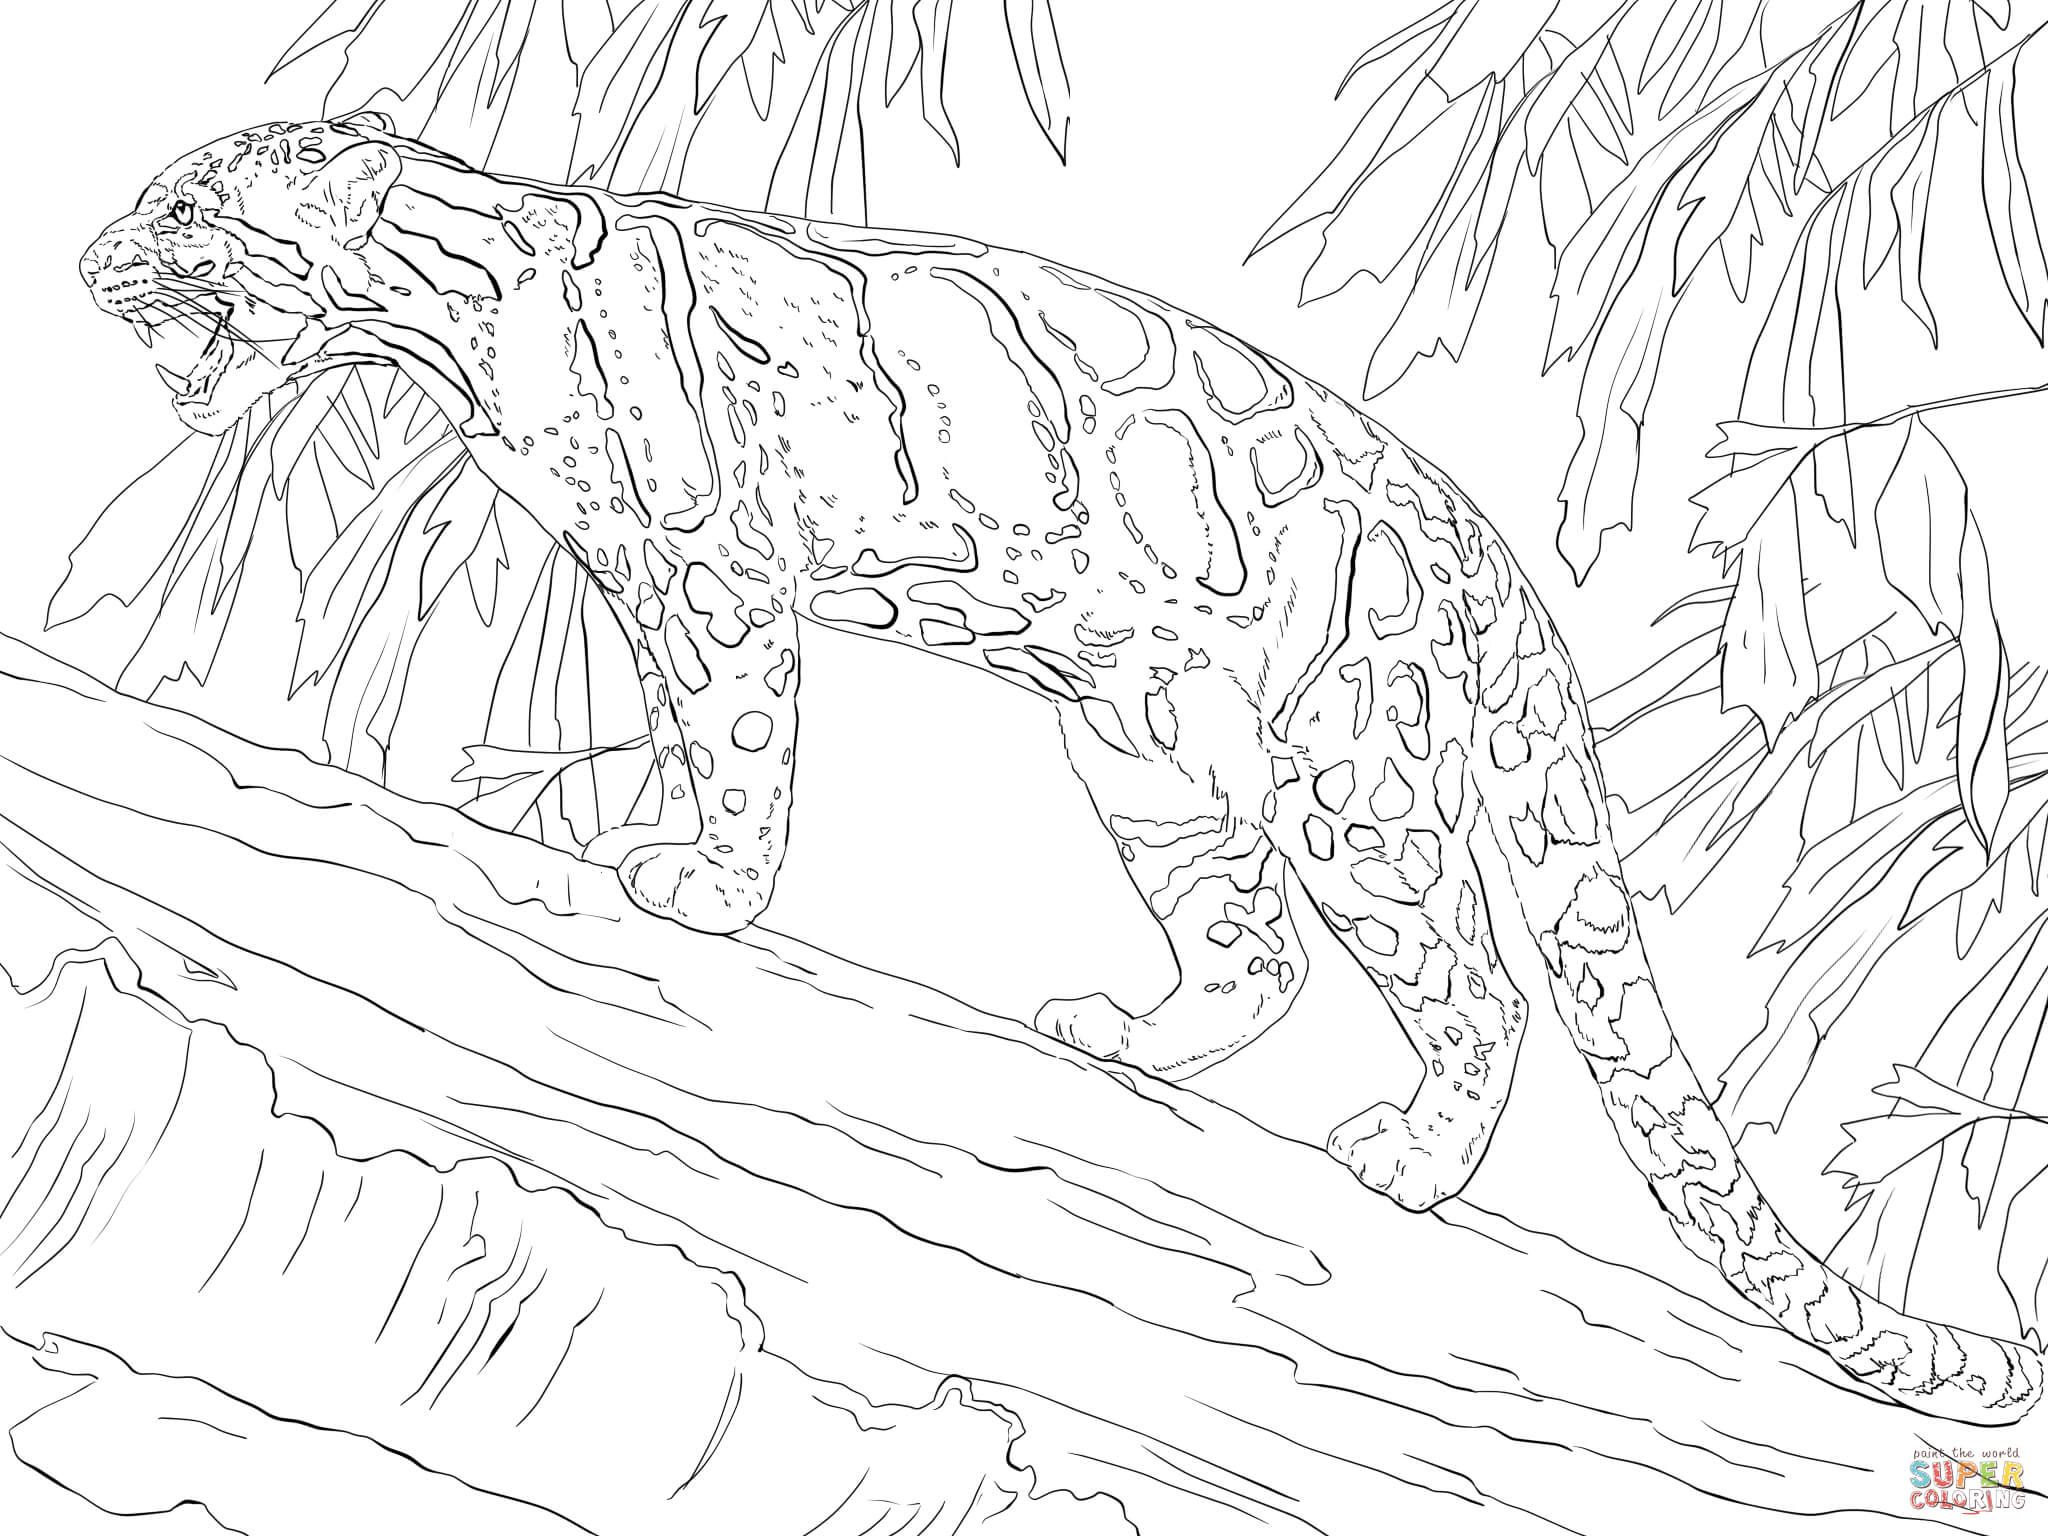 Clouded Leopard Standing on Tree | Super Coloring ...